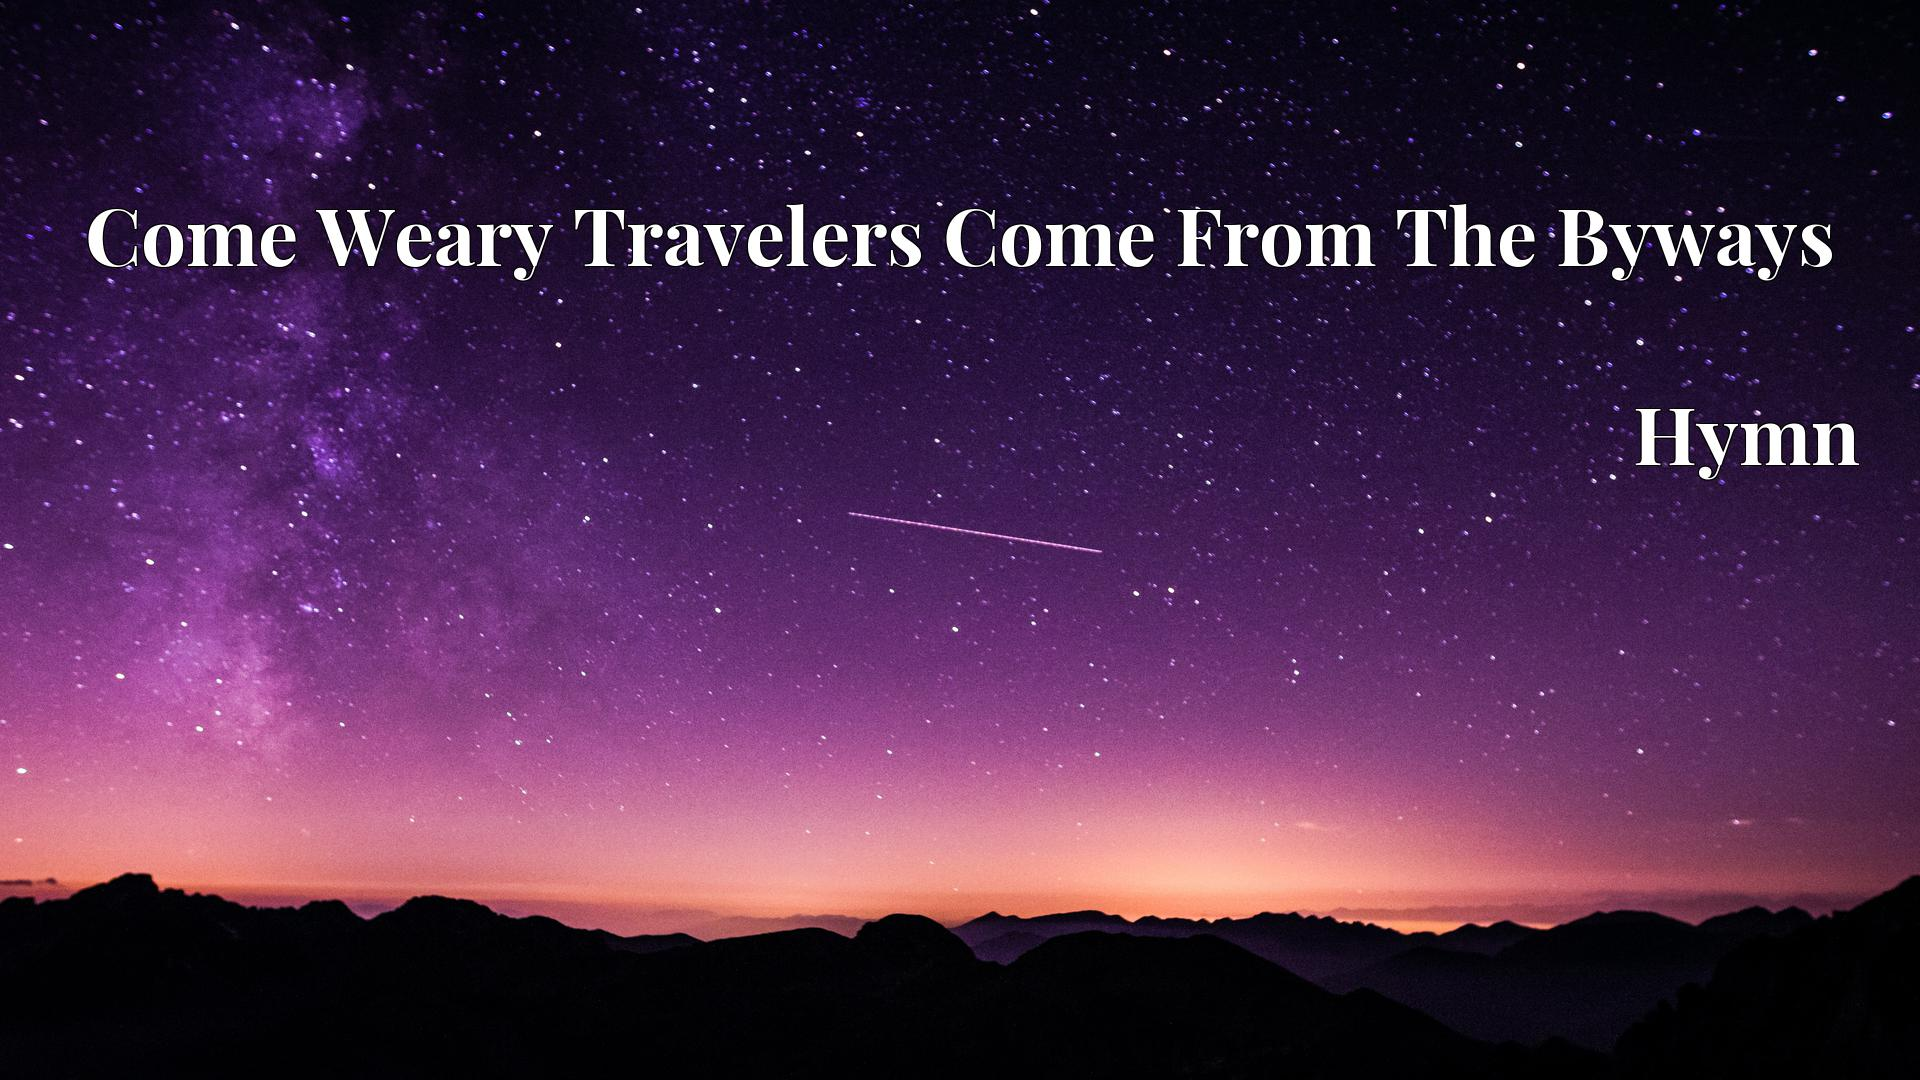 Come Weary Travelers Come From The Byways - Hymn